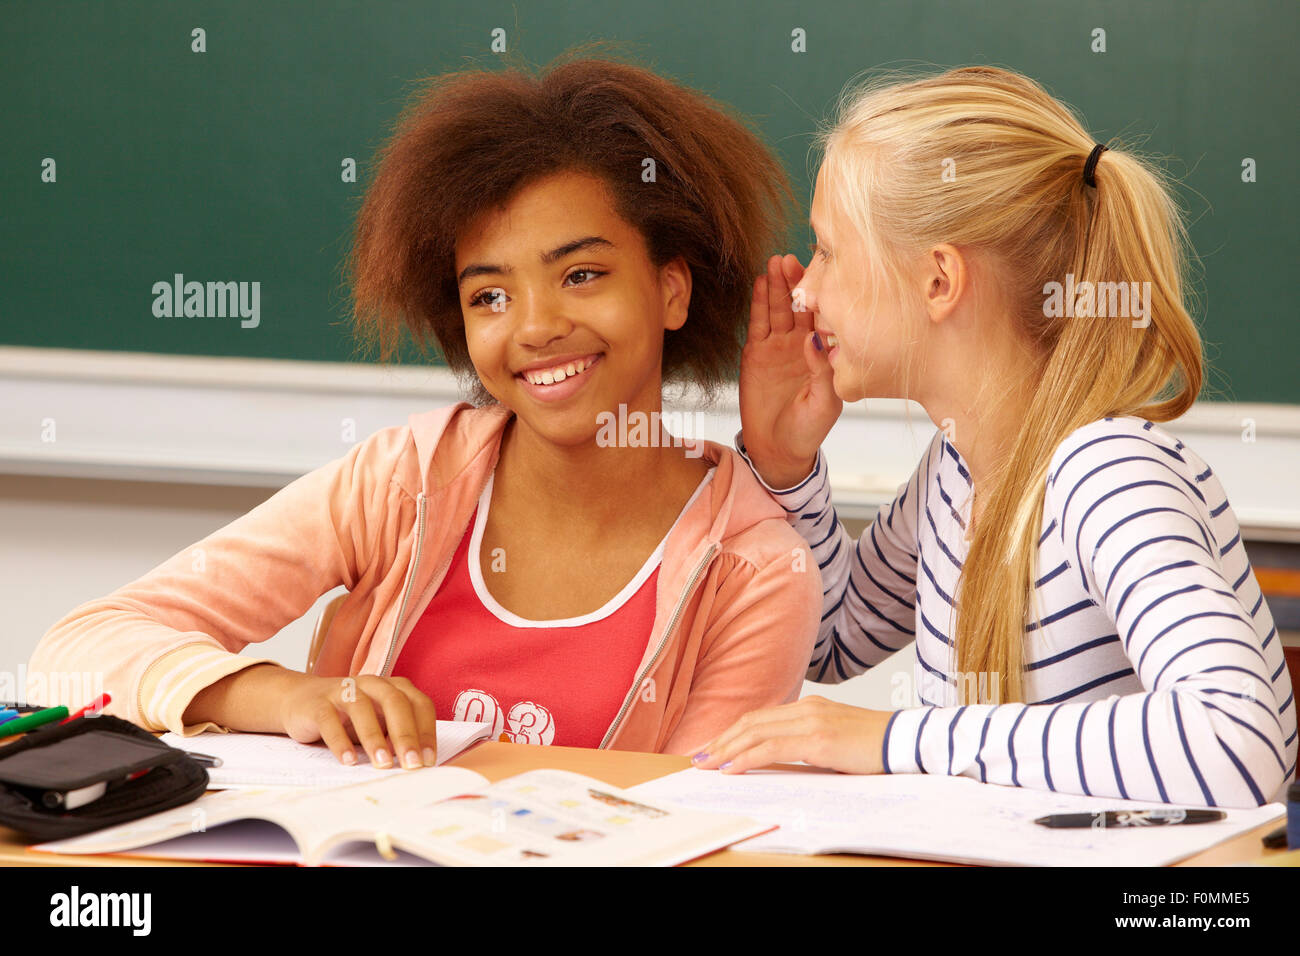 Two girls at school while whispering - Stock Image